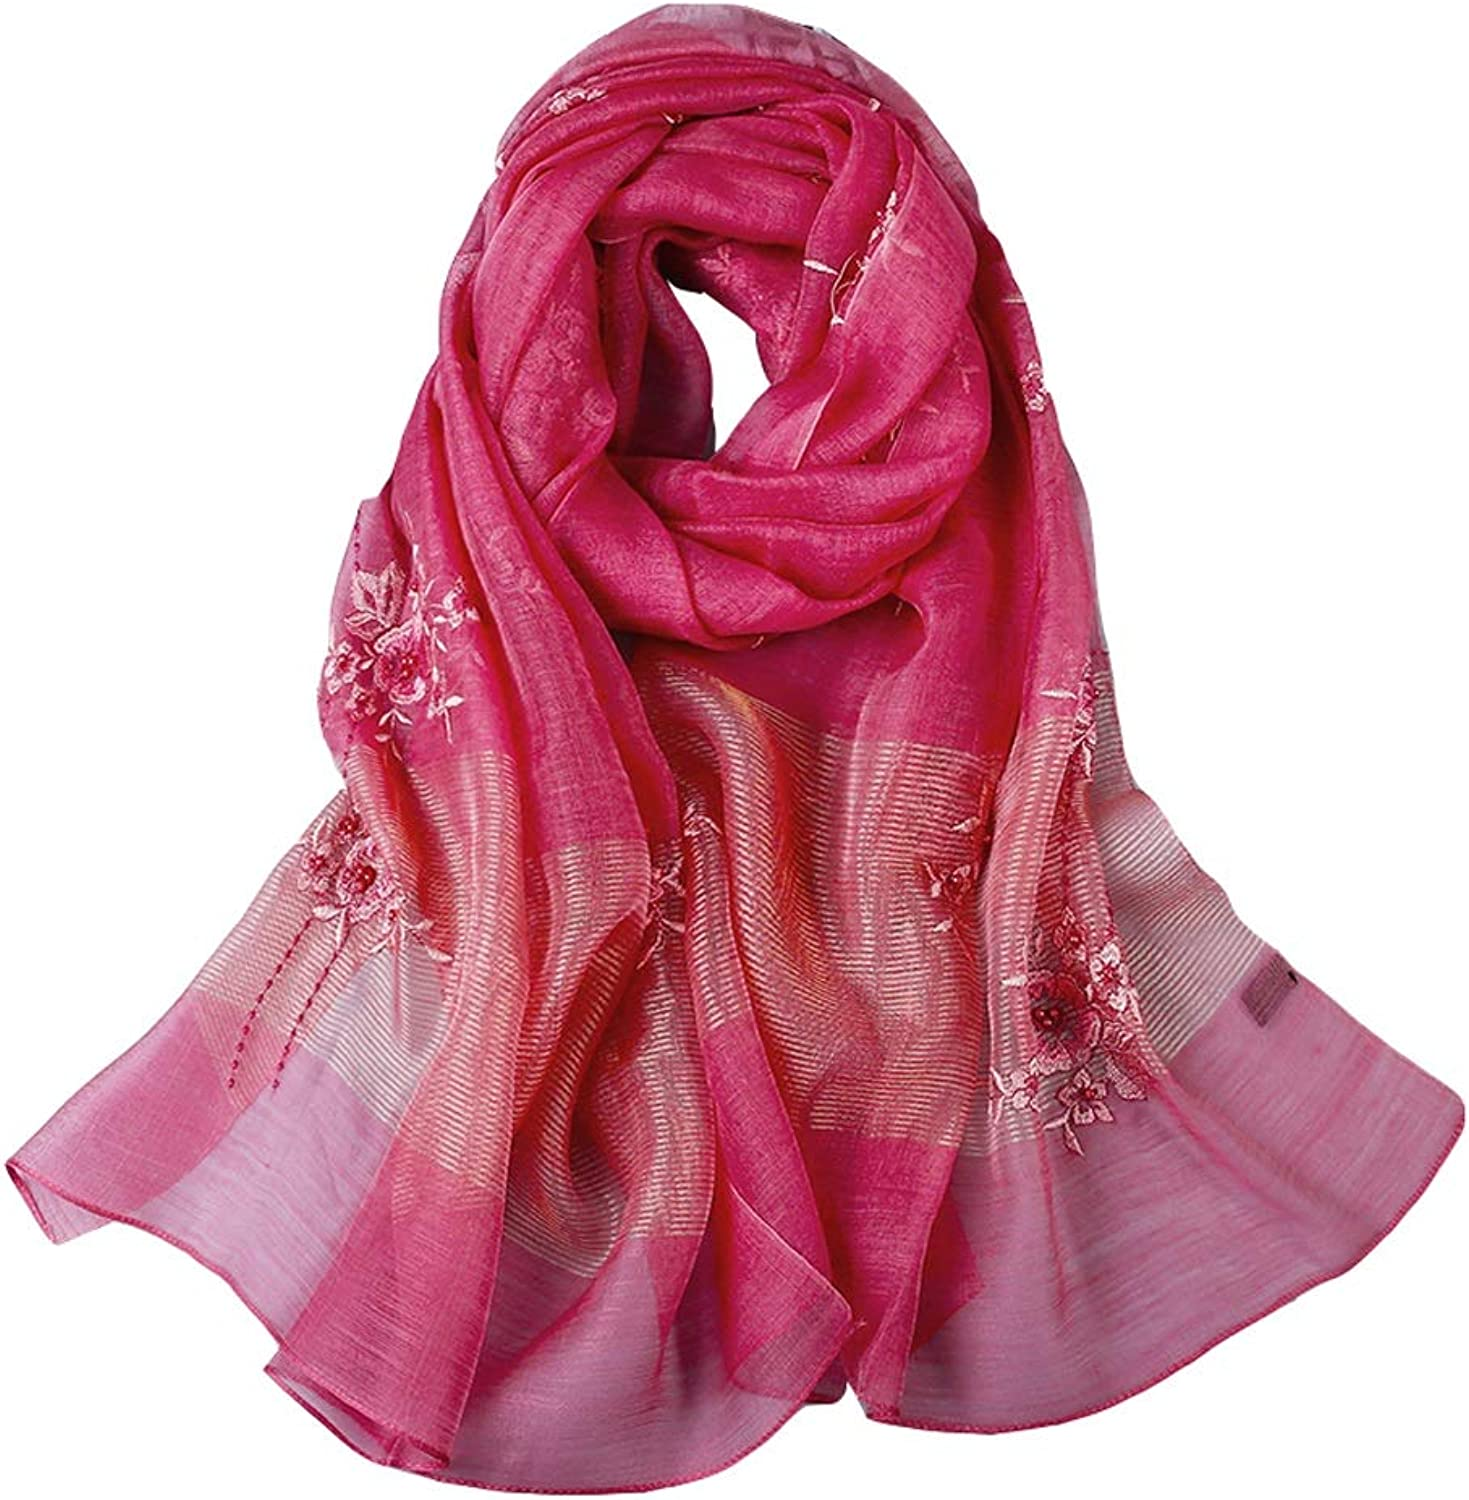 Women Ladies Silk Scarf Neck Predection Girl Embroidery Flower Lightweight Shawl Female Thin Section Sunscreen Scarves Mother Gifts (color   pink Red)